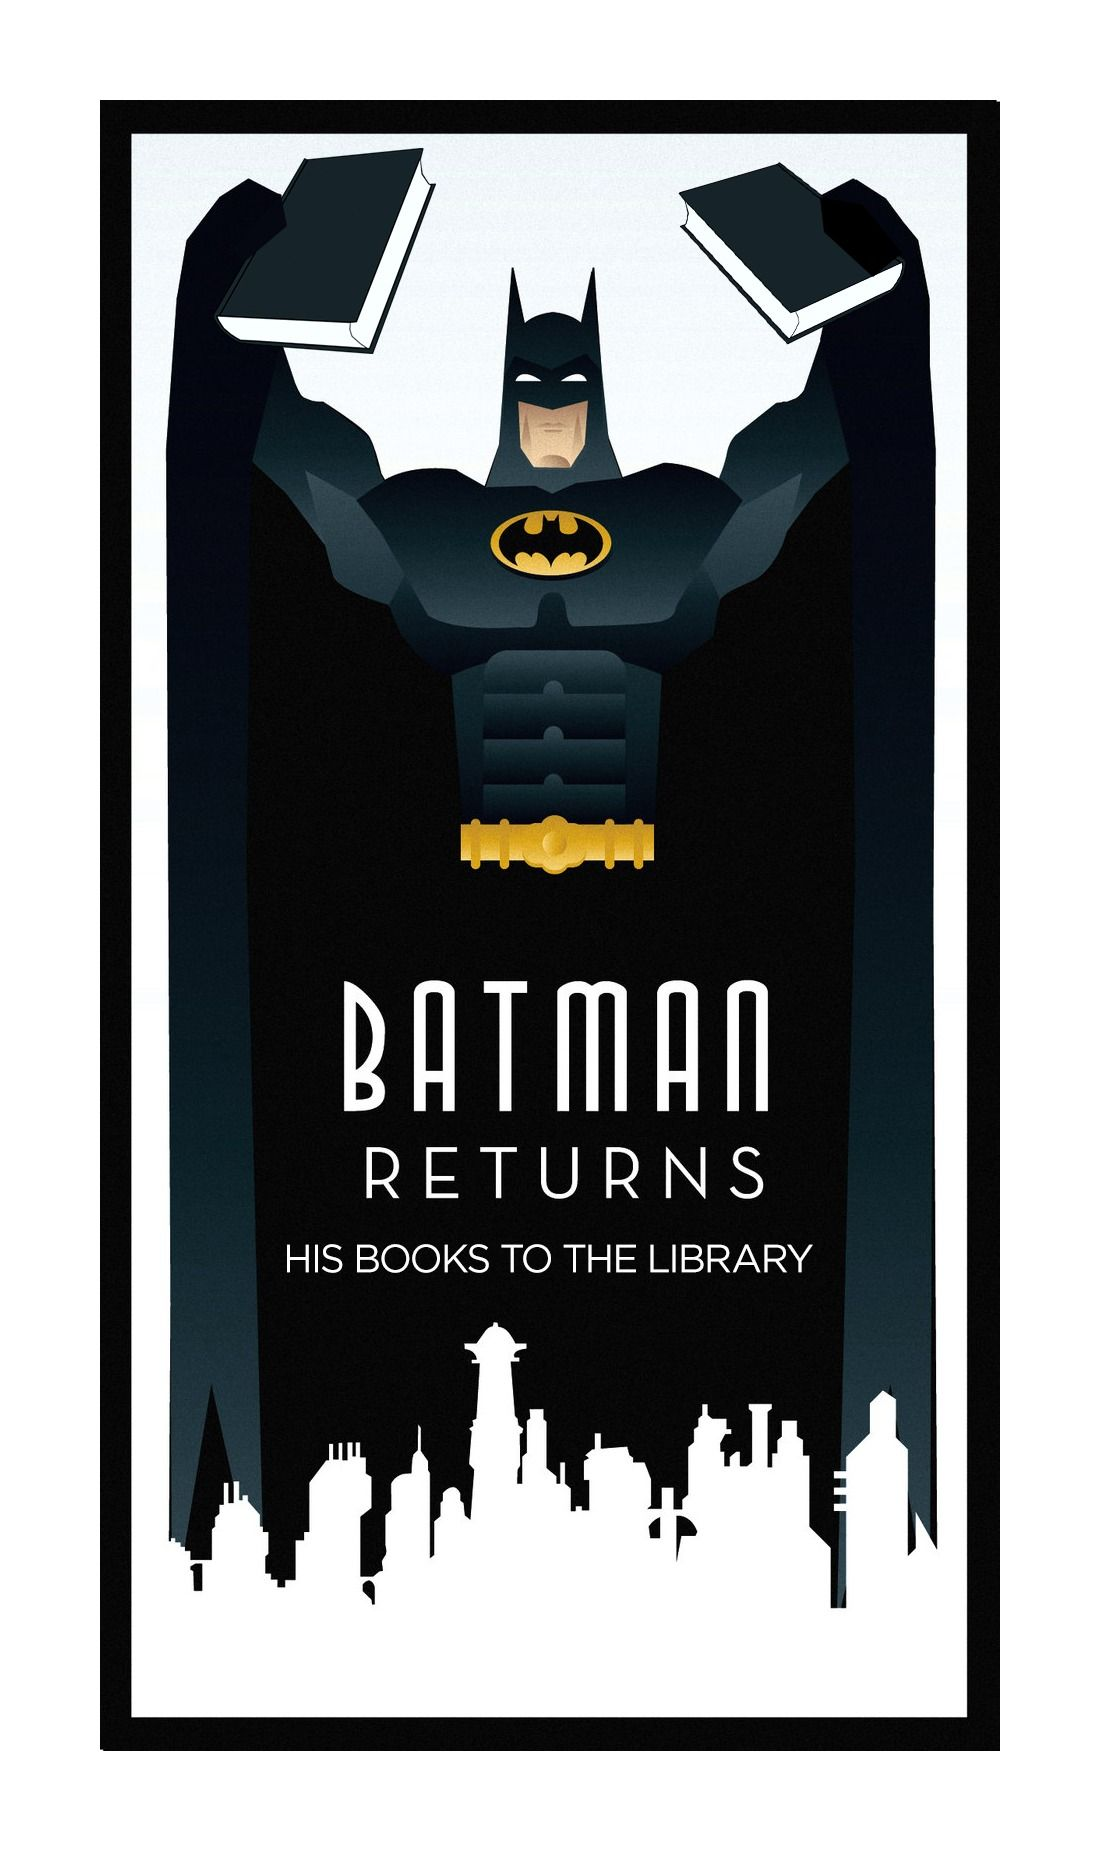 chicagopubliclibrary: Batman Returns… His books to the library ...